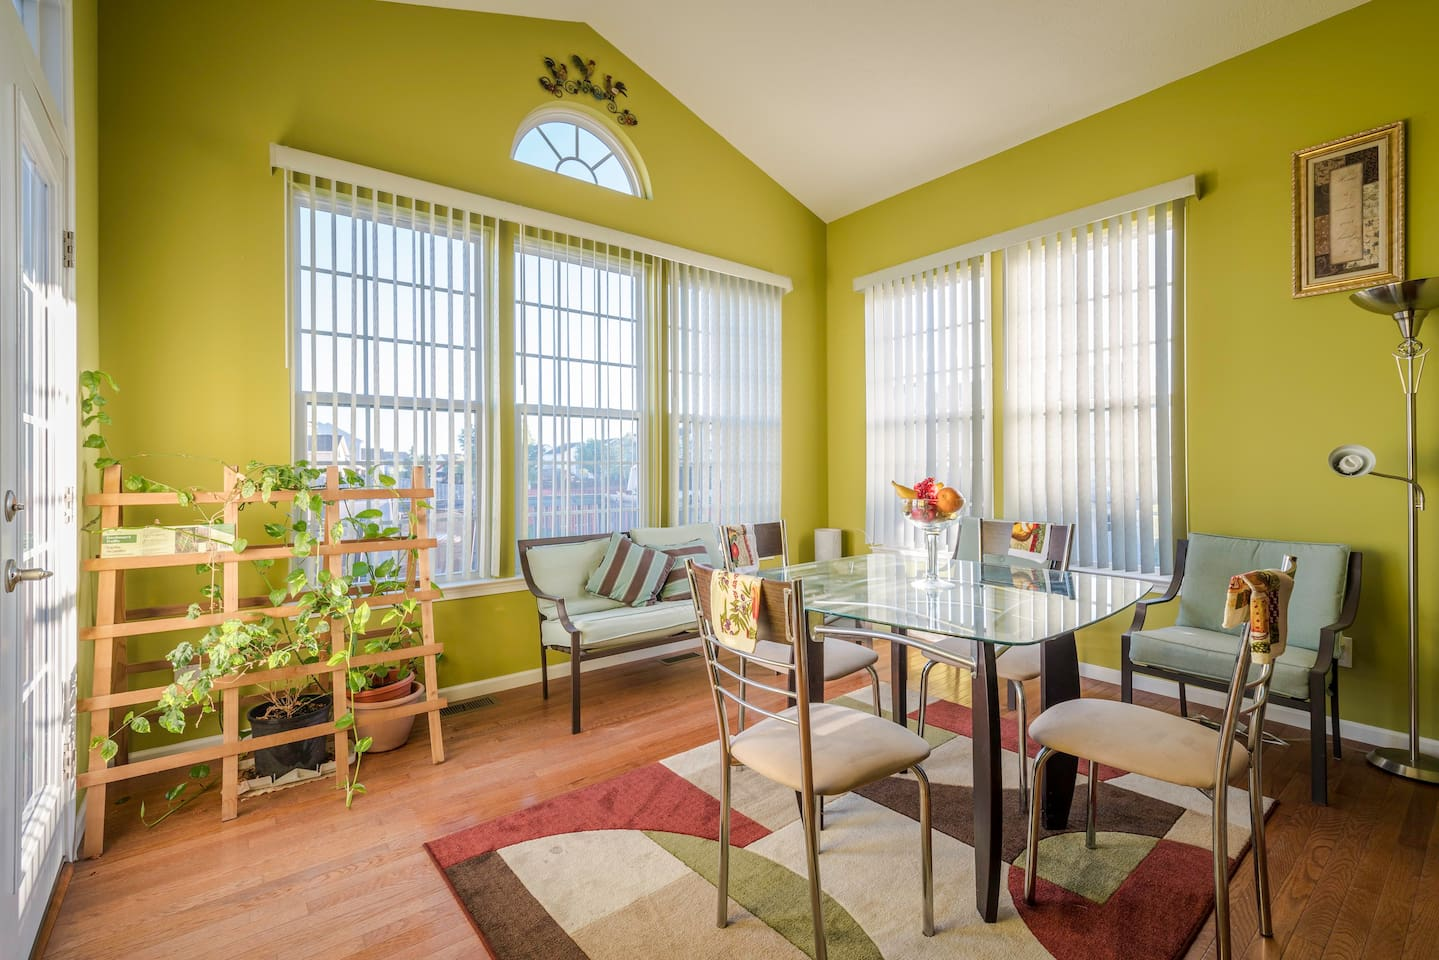 Sun room or morning room with breakfast table.